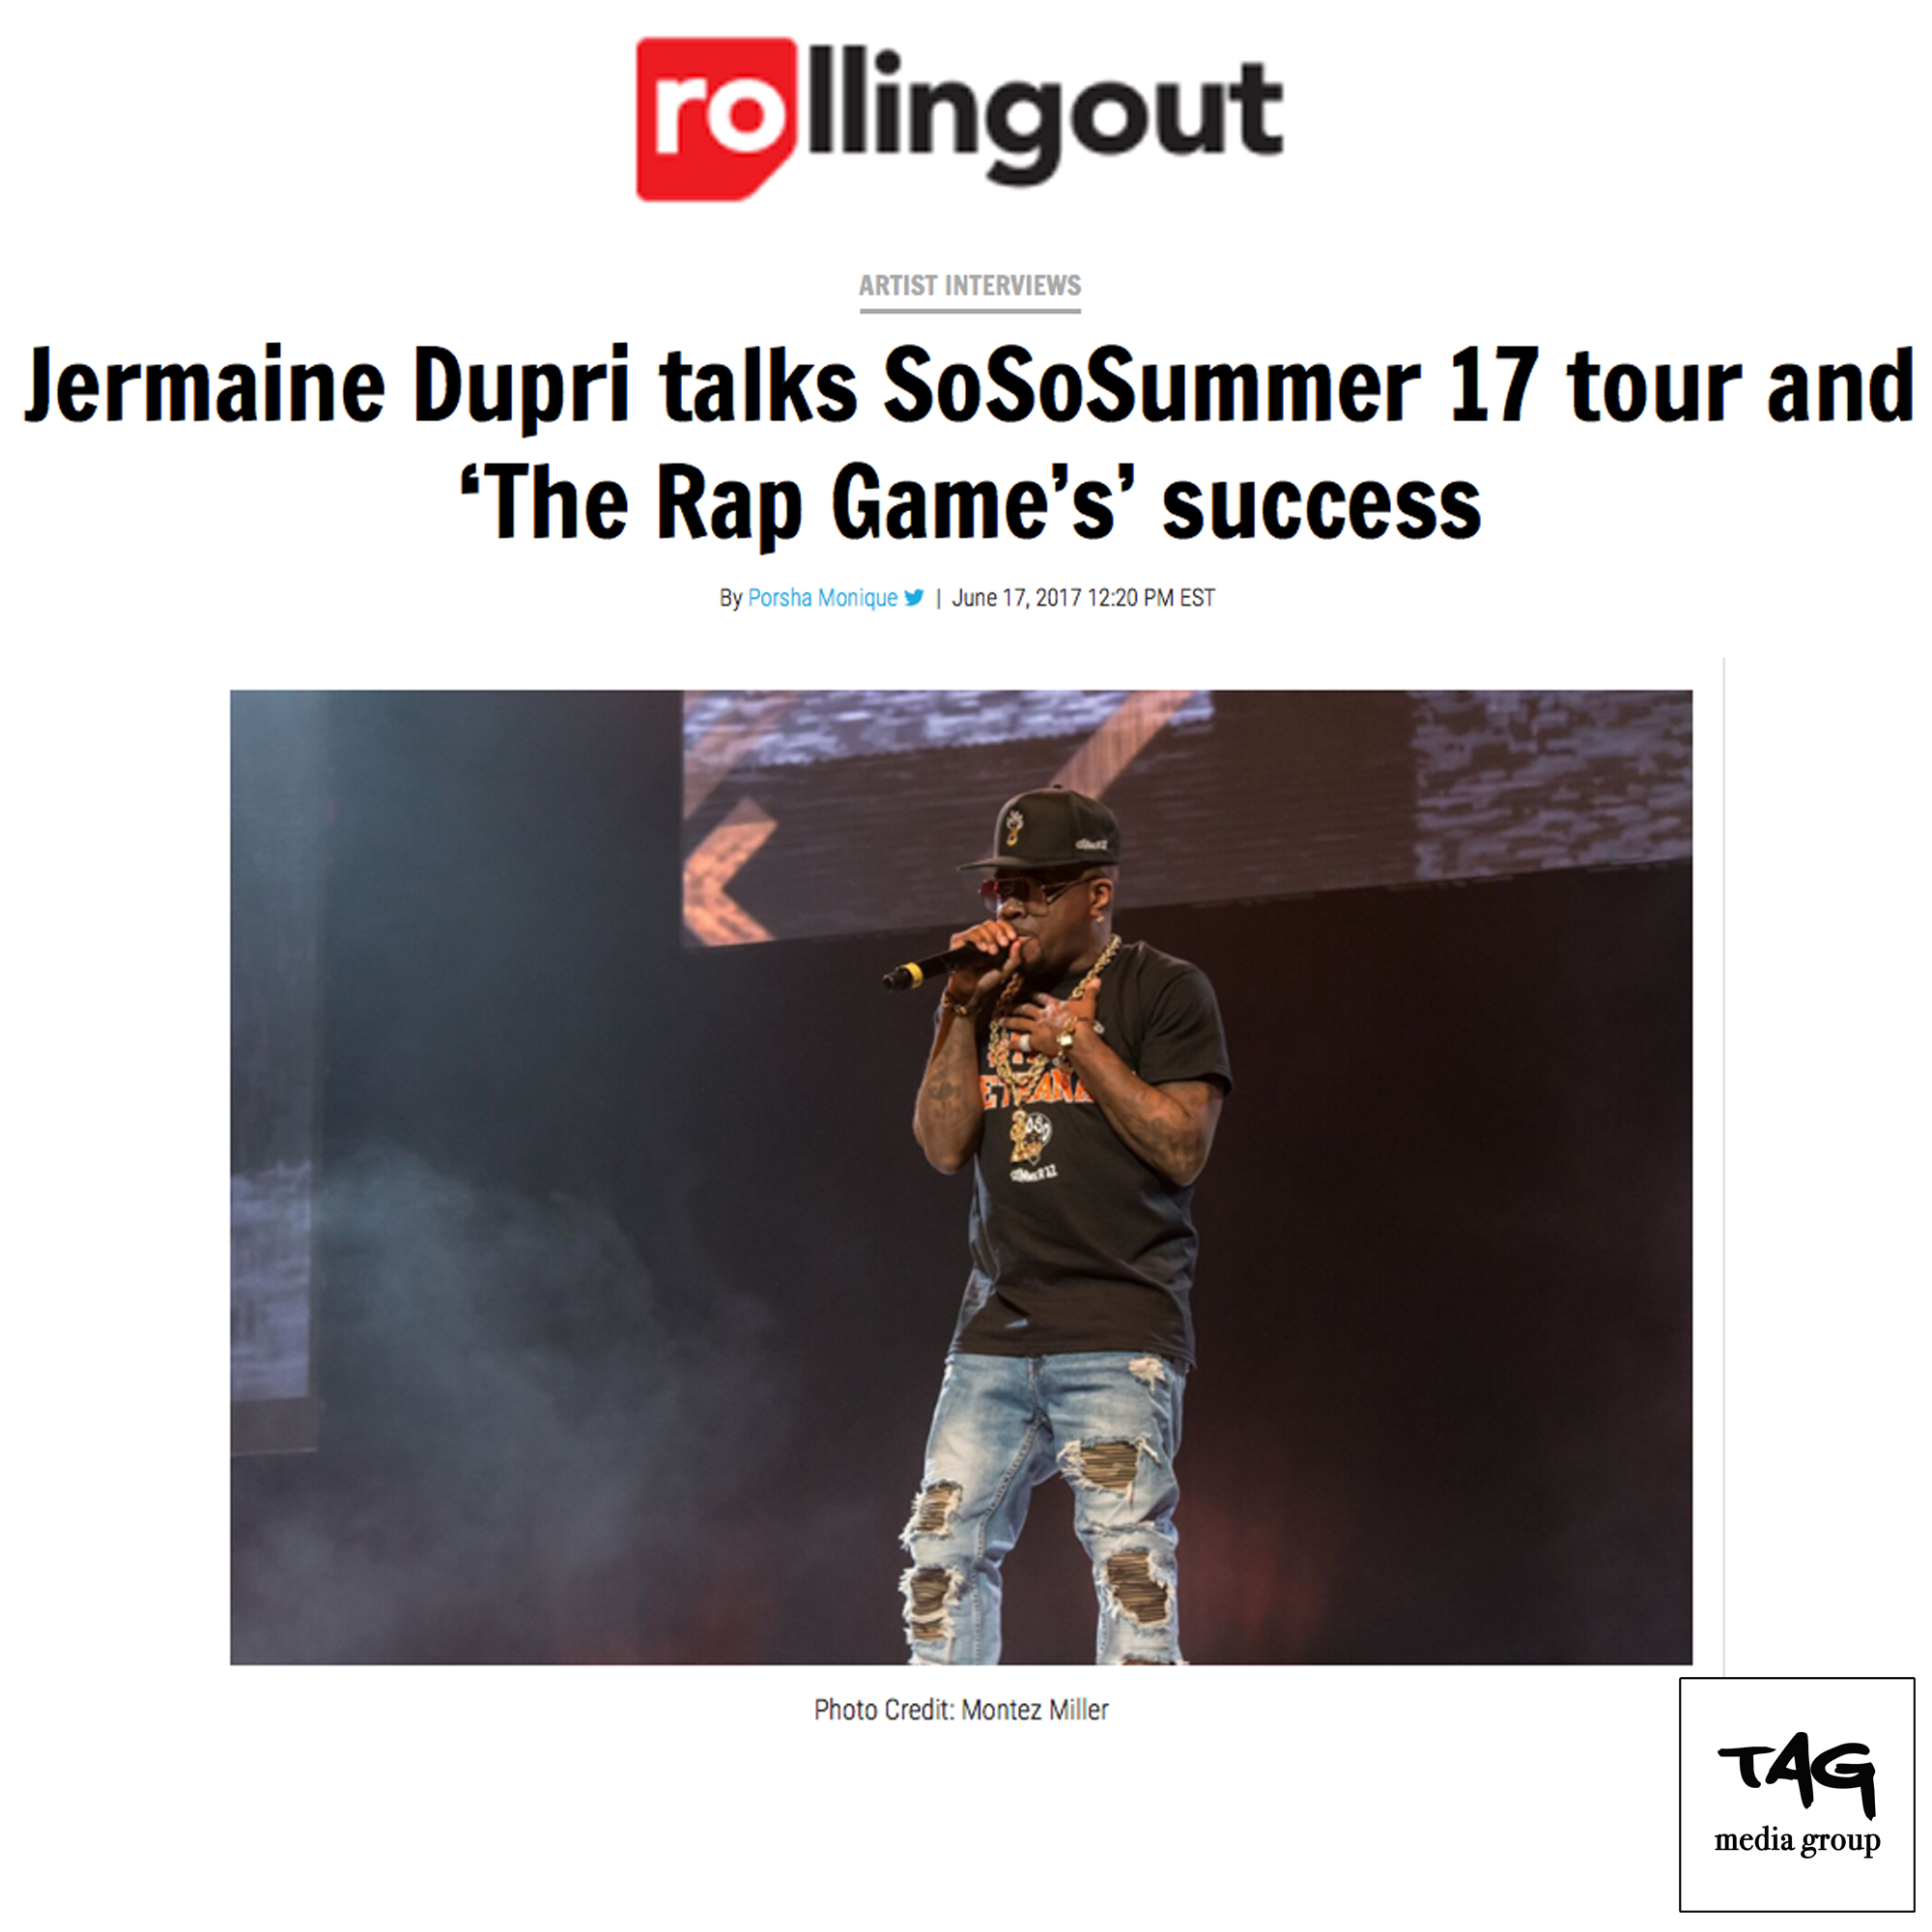 Jermaine Dupri and the So So Summer Tour on Rolling Out